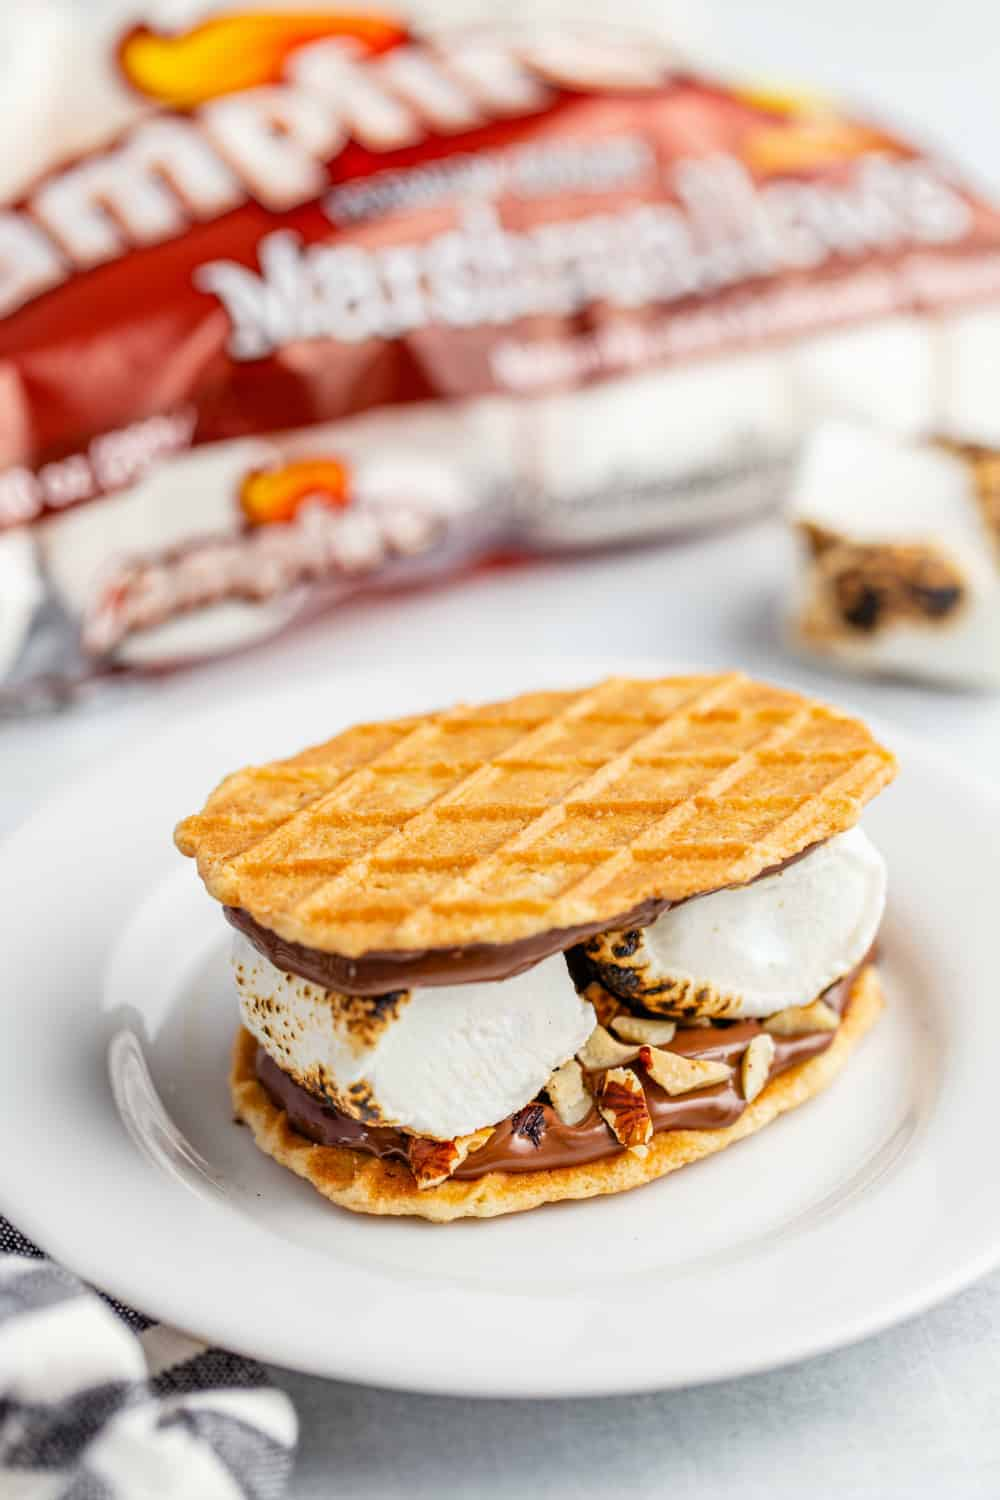 Toasted Hazelnut S'more made with waffle cookies with bag of marshmallows in the background